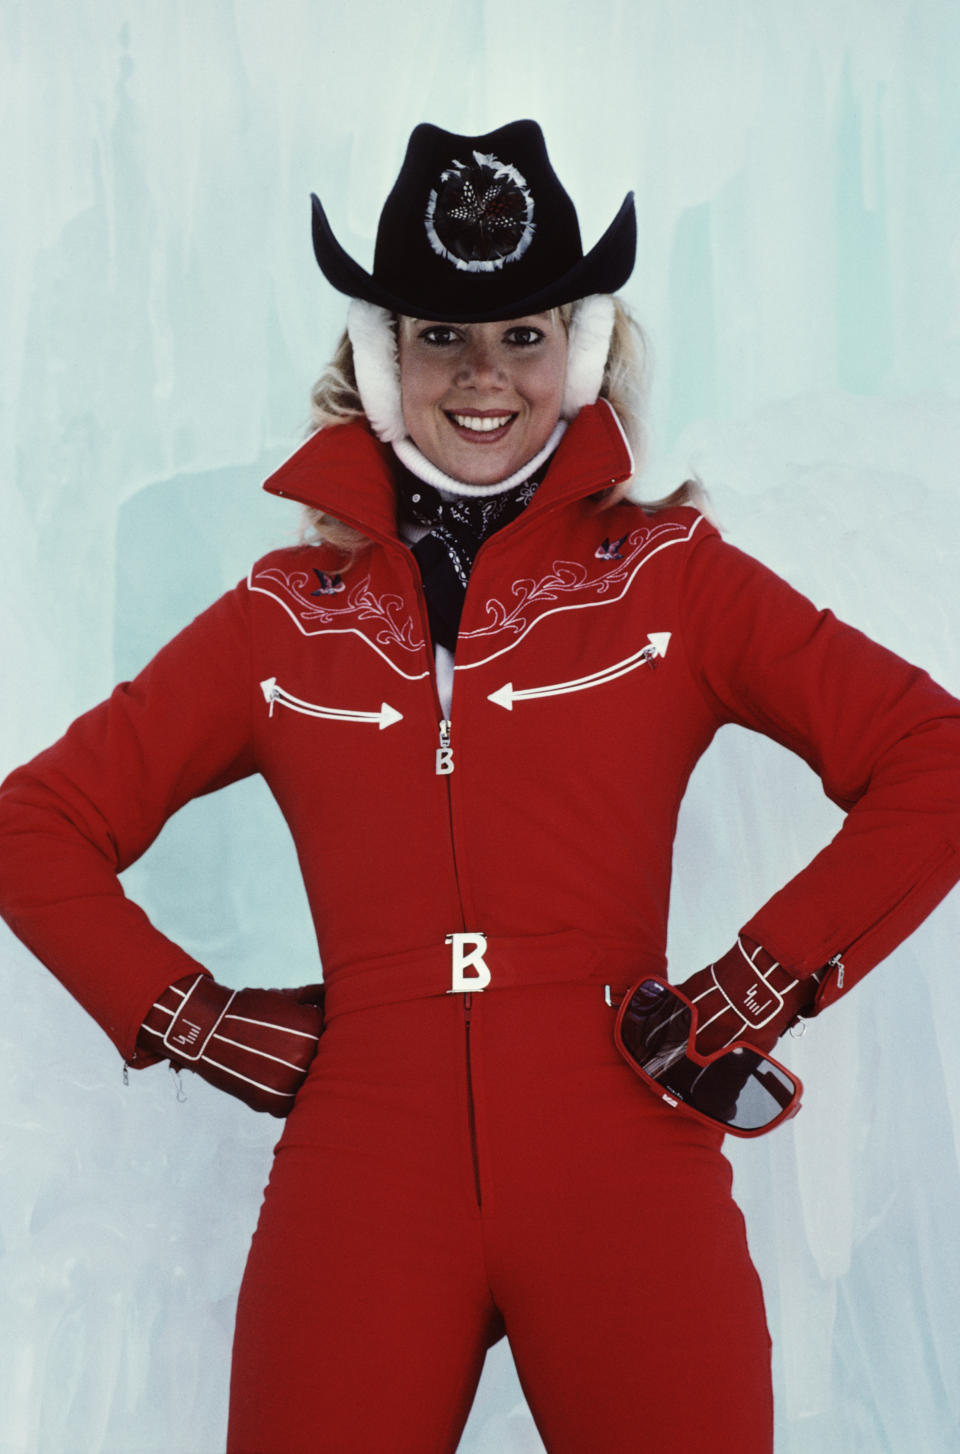 American ice skating champion Lynn-Holly Johnson as Bibi Dahl in the James Bond film 'For Your Eyes Only', 1981. (Photo by Keith Hamshere/Getty Images)